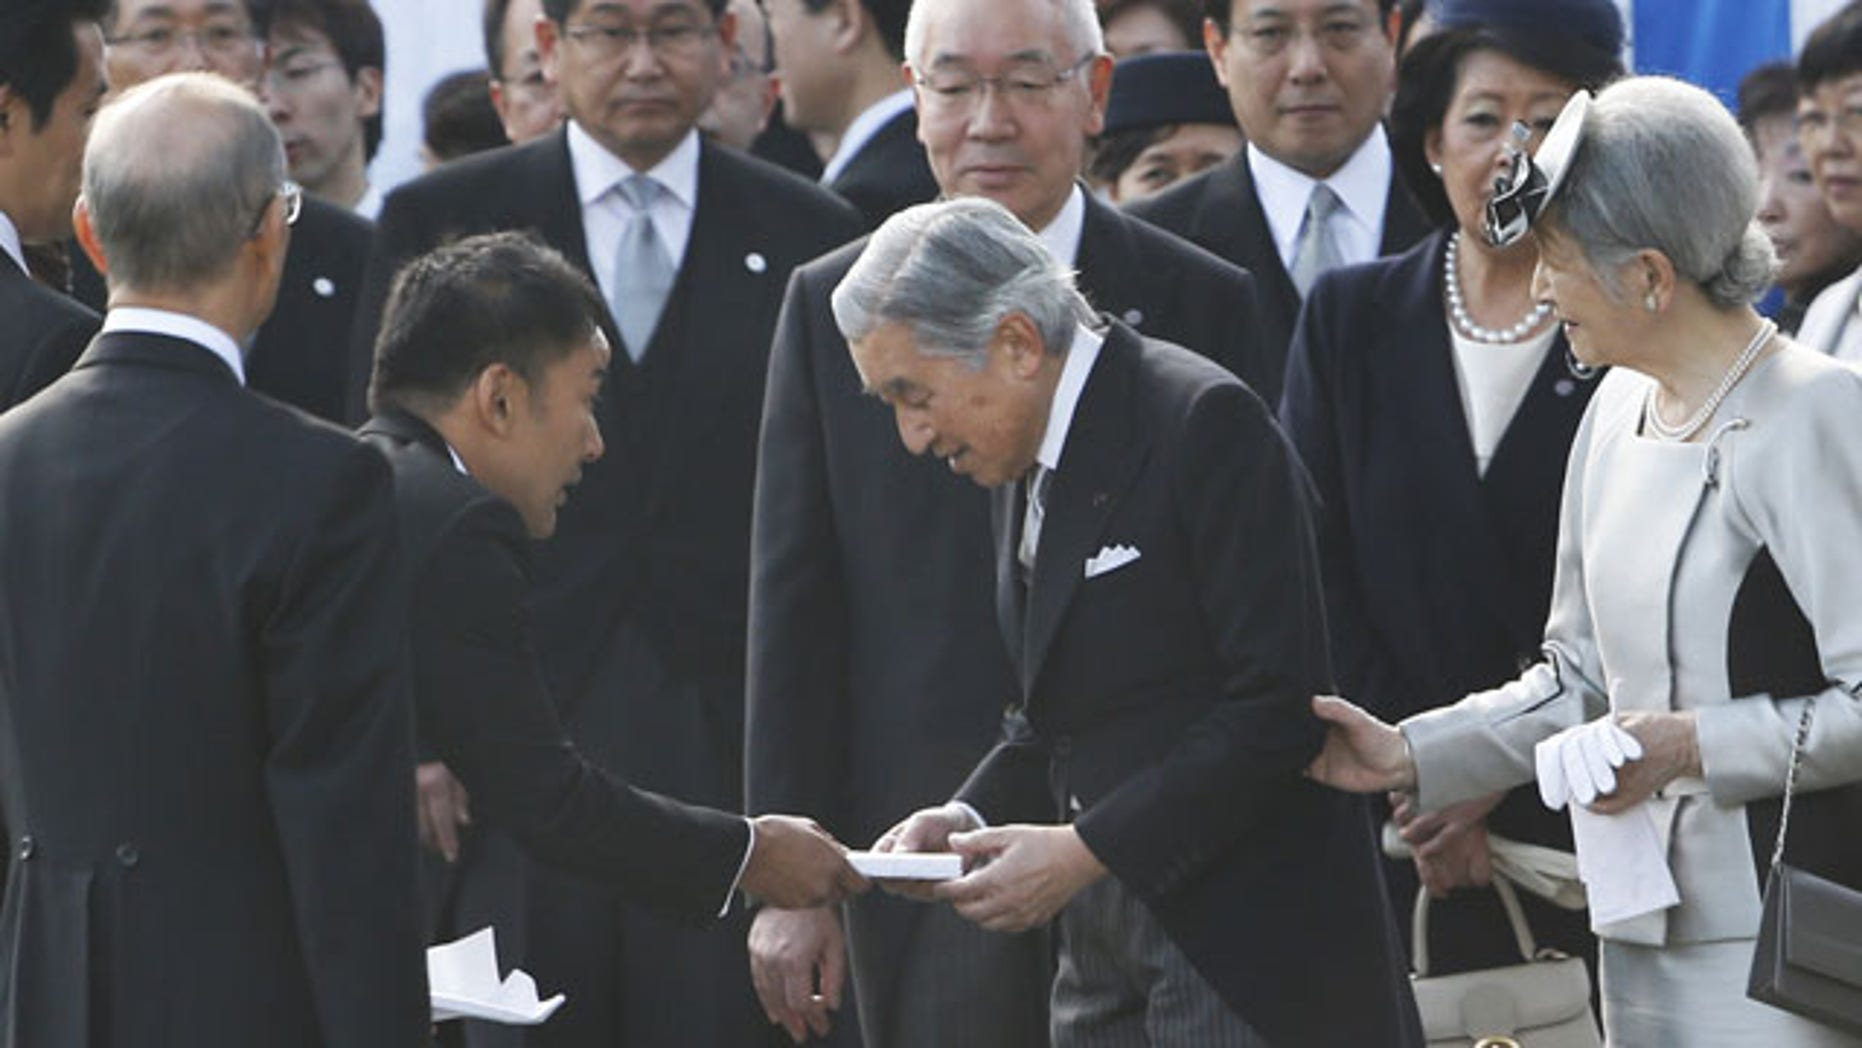 FILE - In this Thursday, Oct. 31, 2013 file photo, actor-turned-lawmaker Taro Yamamoto, second left, hands over a letter to Japan's Emperor Akihito, second right, as Empress Michiko, right, and chief steward Yutaka Kawashima, top center, look on during the autumn garden party at the Imperial Palace in Tokyo. The novice lawmaker has caused an uproar in Japan by doing something taboo: handing a letter to the emperor - a gesture considered both impolite and inappropriate. (AP Photo)